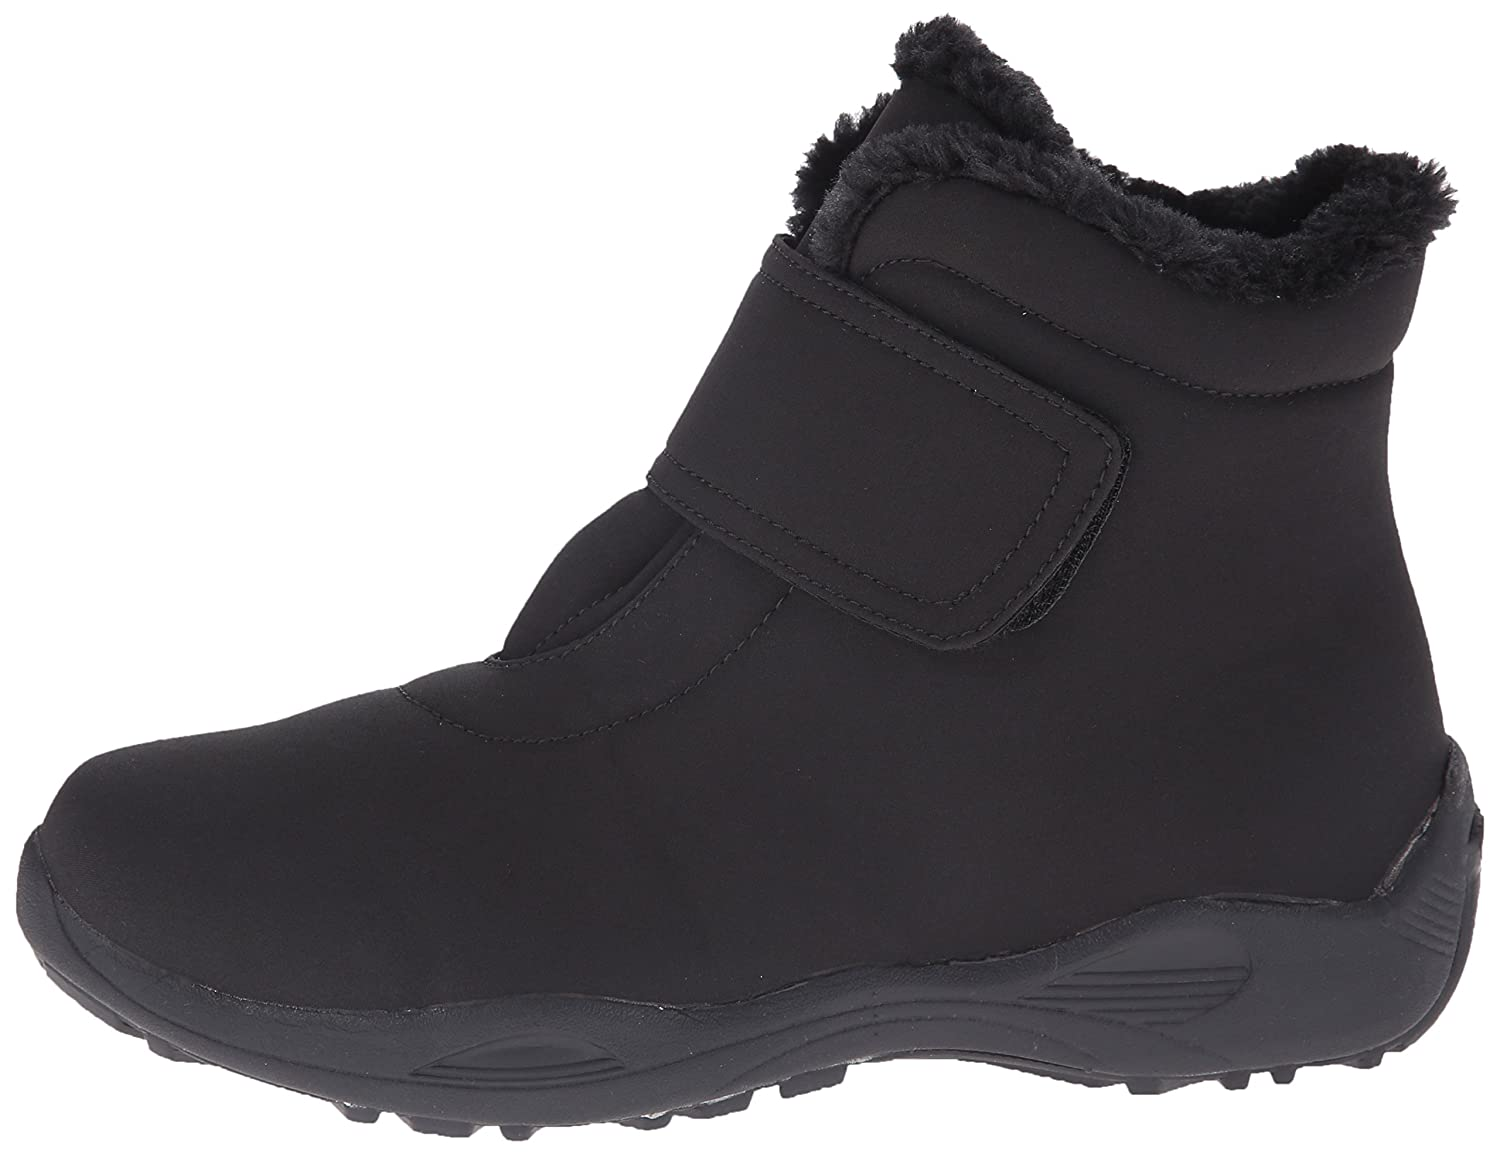 Propet Women's Madison Ankle Strap All Weather Boot B00T9WI74G 7 W US|Black